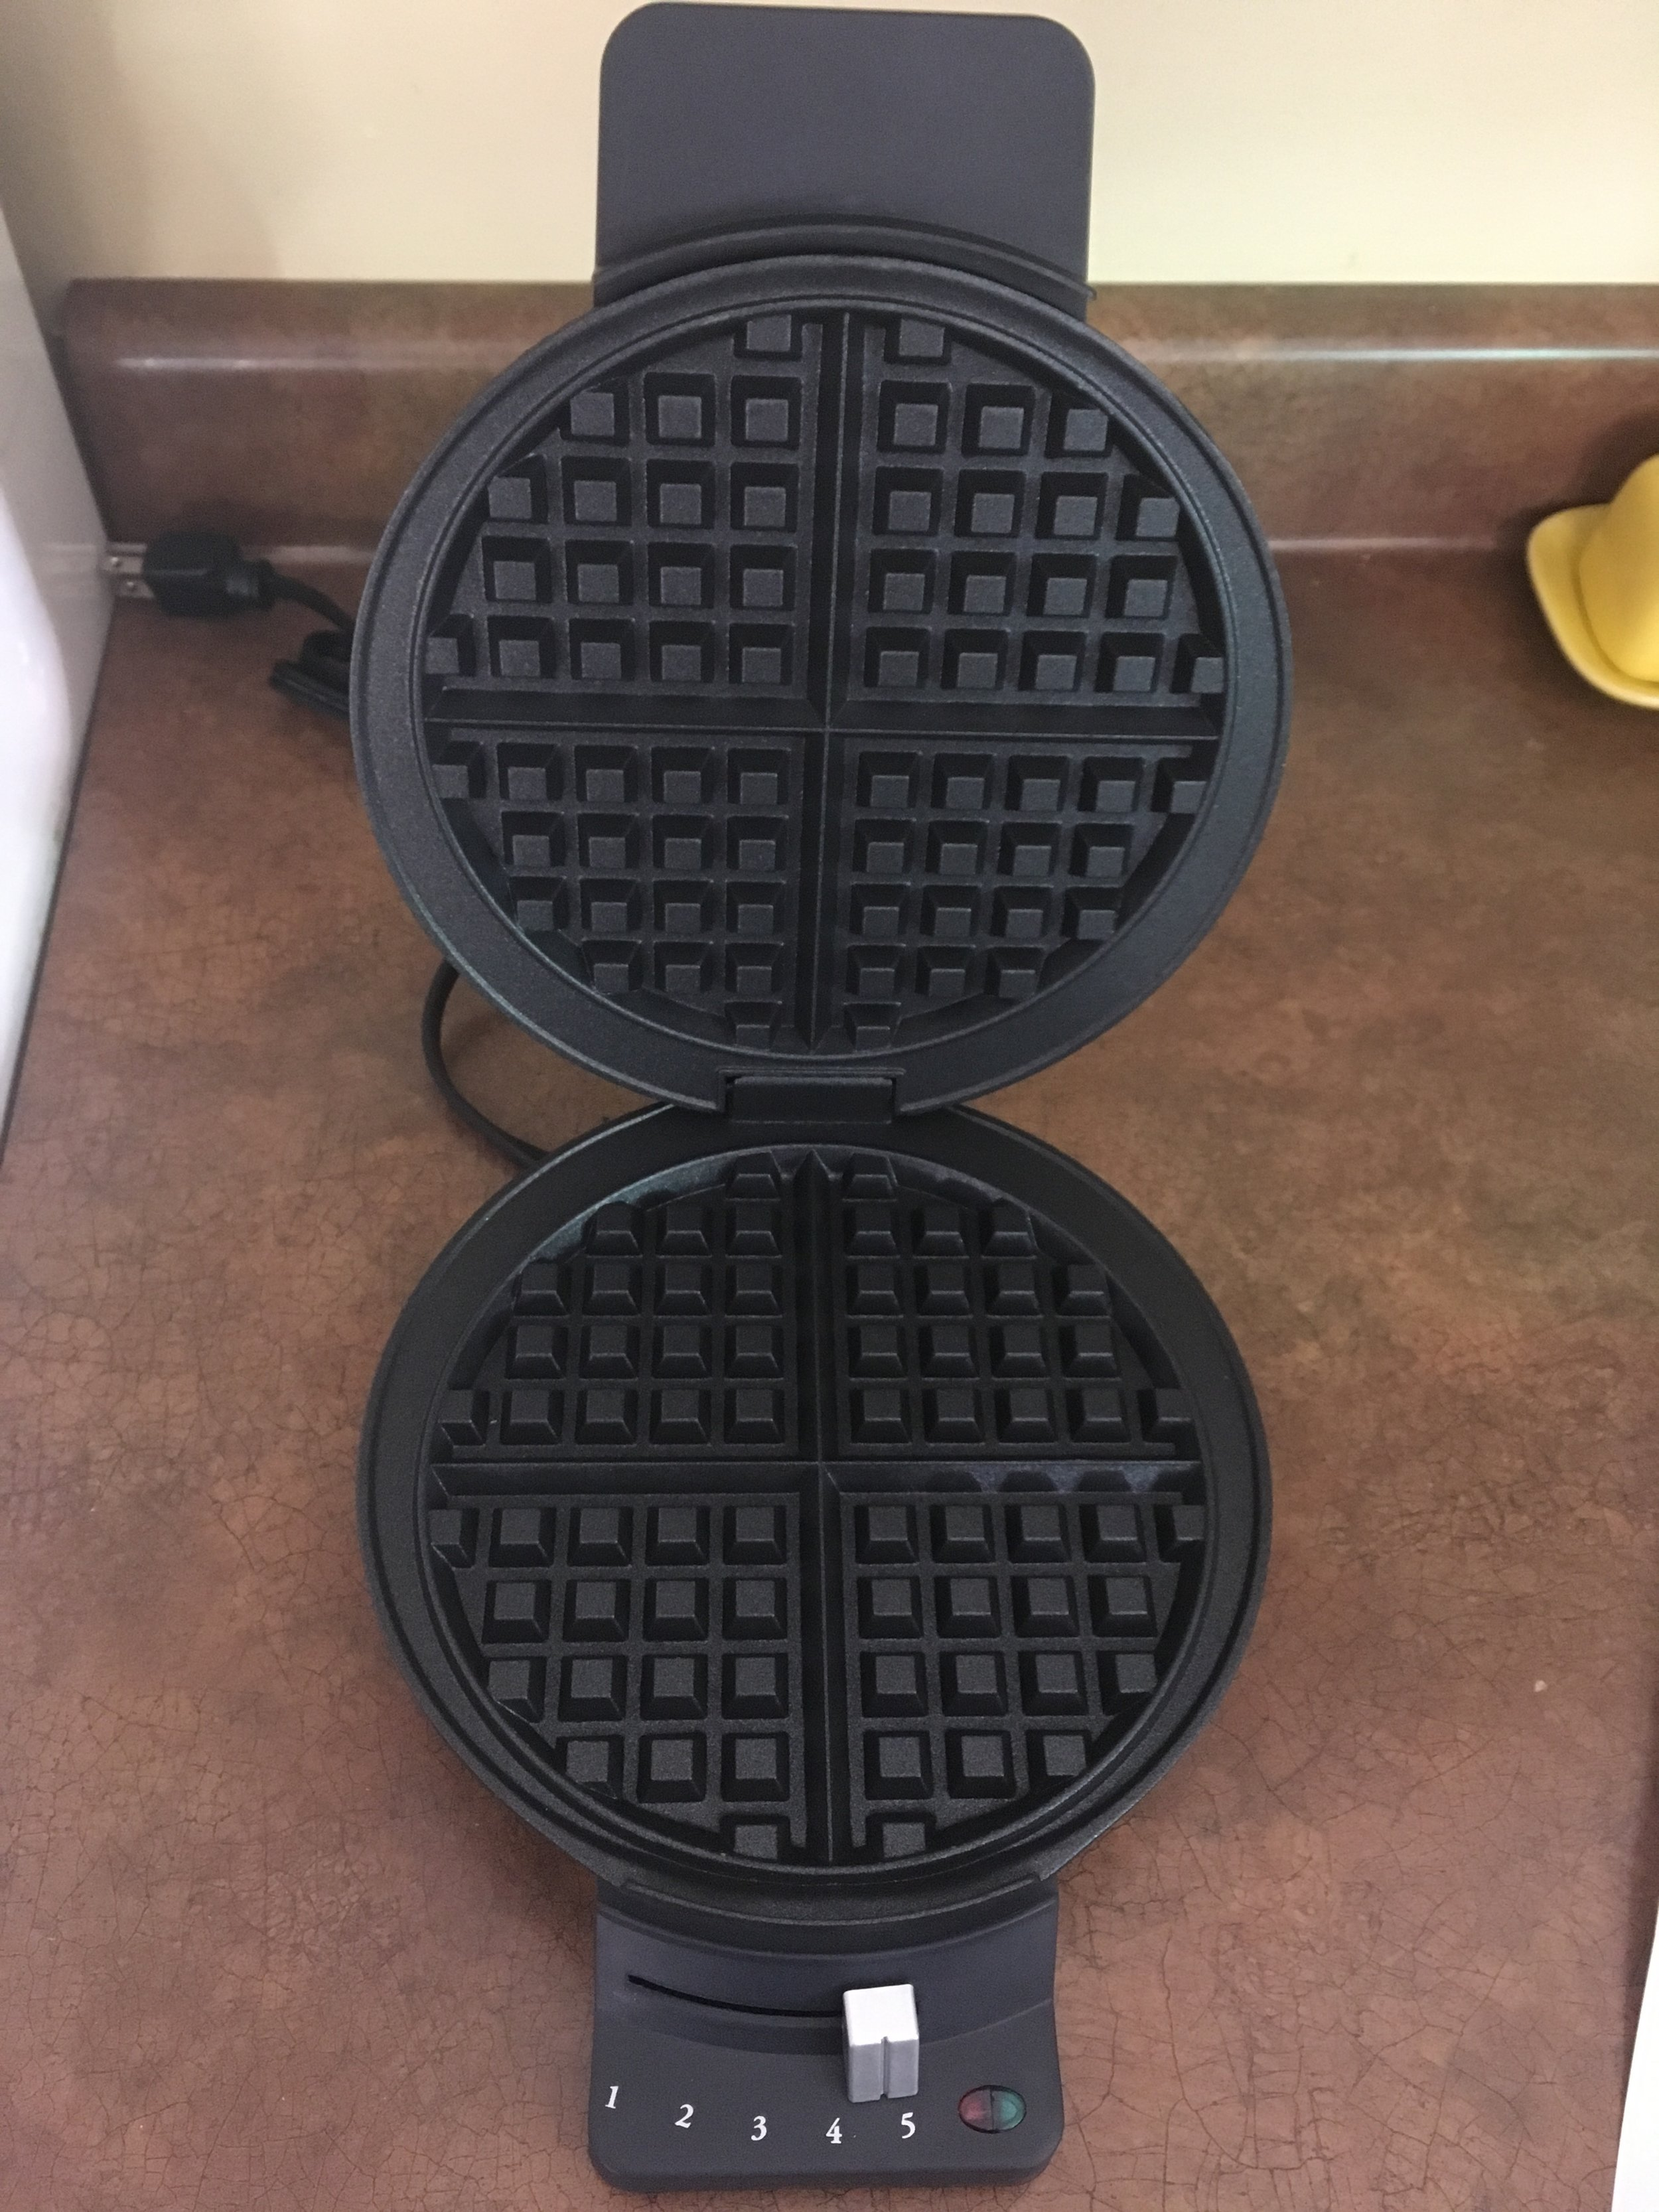 My birthday present from my parents this year. I have wanted a waffle maker for as long as I can remember.